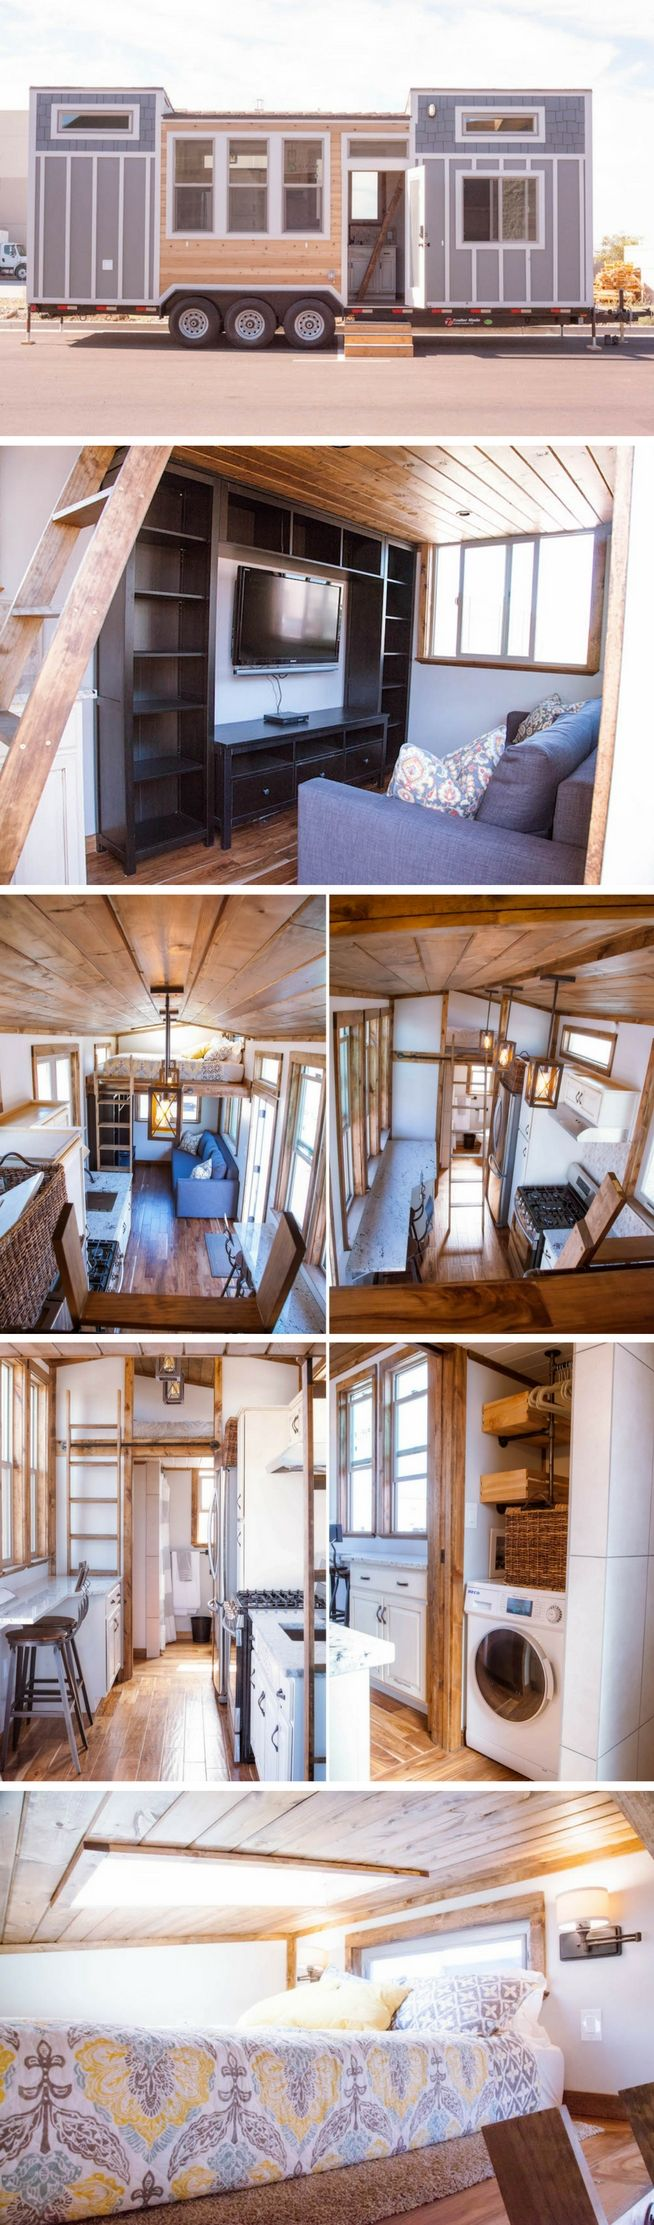 28 best images about 600 sq ft home ideas on pinterest for Tiny house 600 sq ft